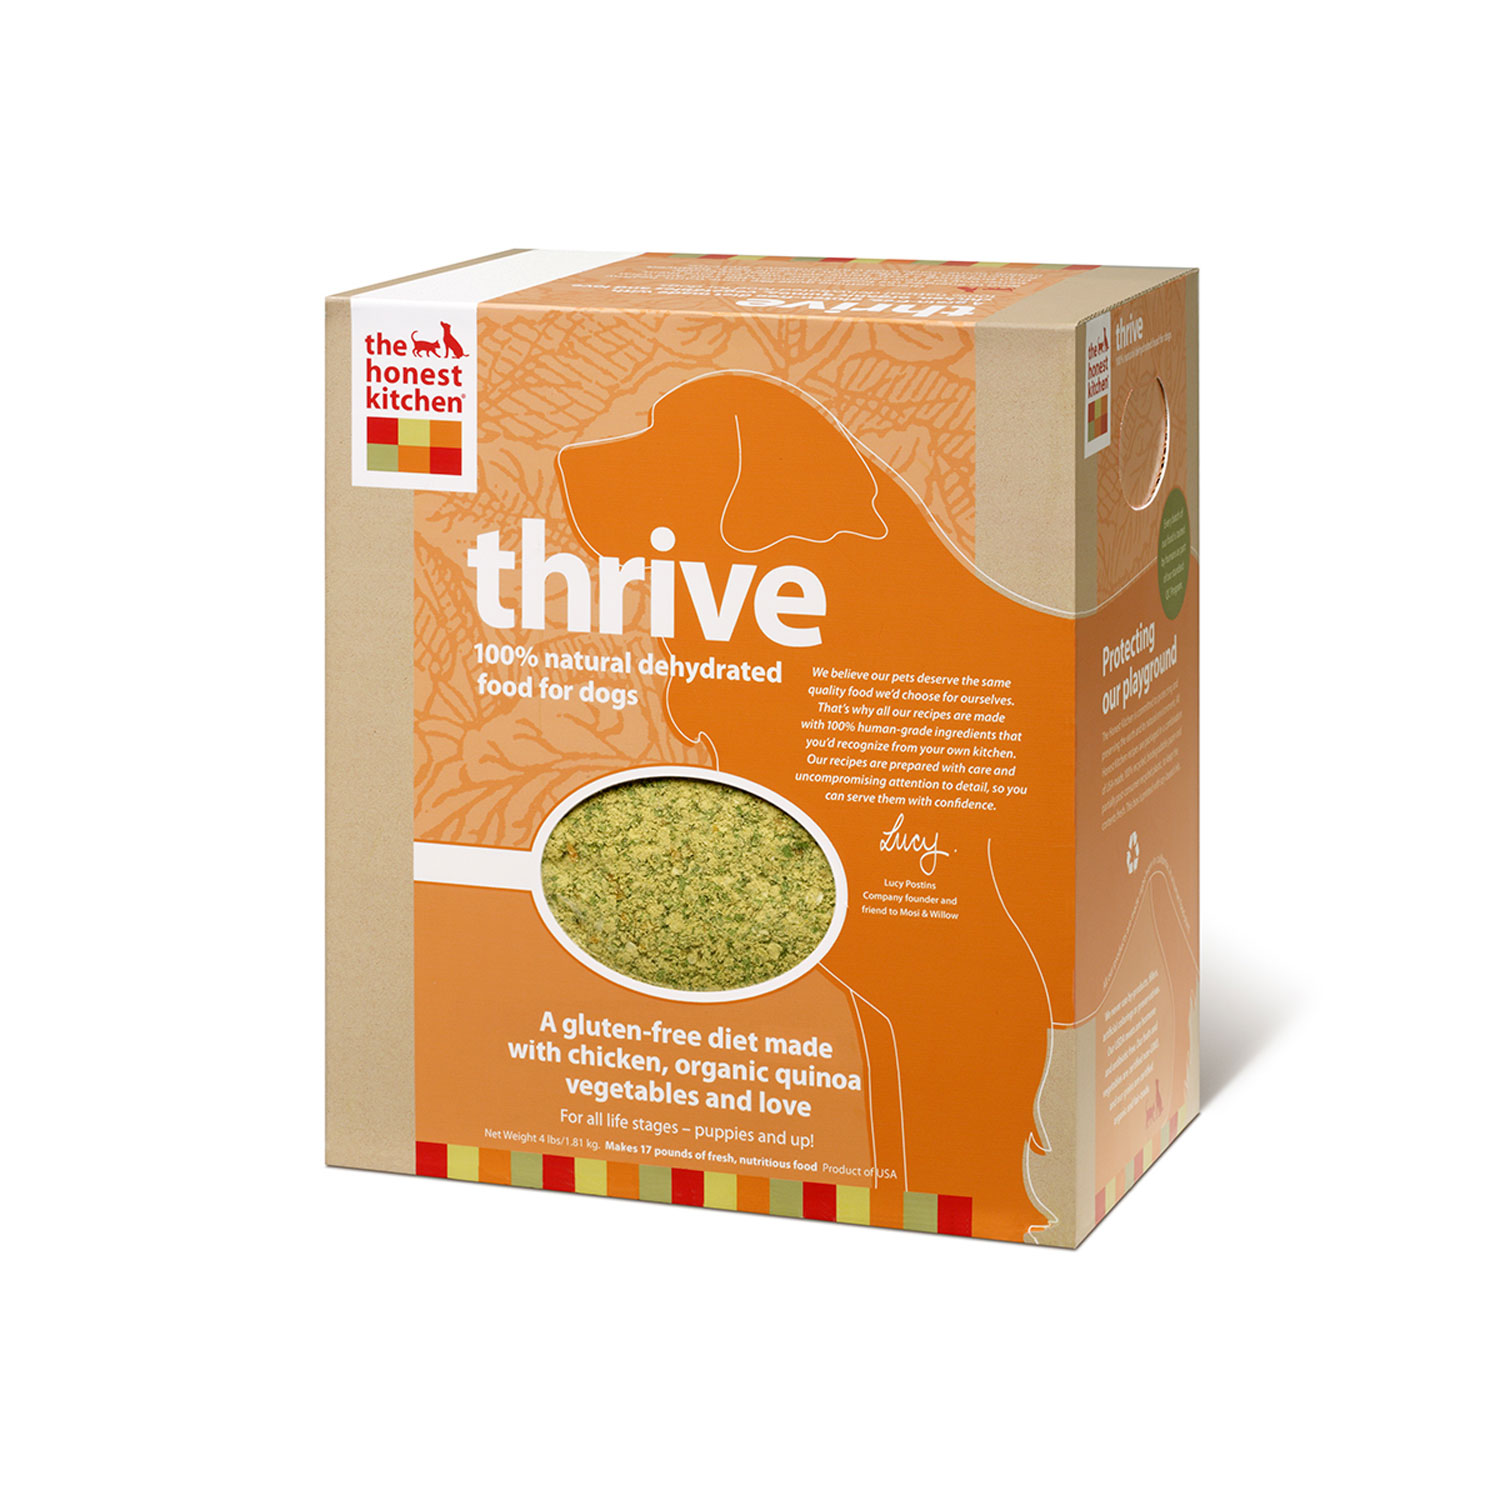 the honest kitchen recalls thrive zeal verve dehydrated food